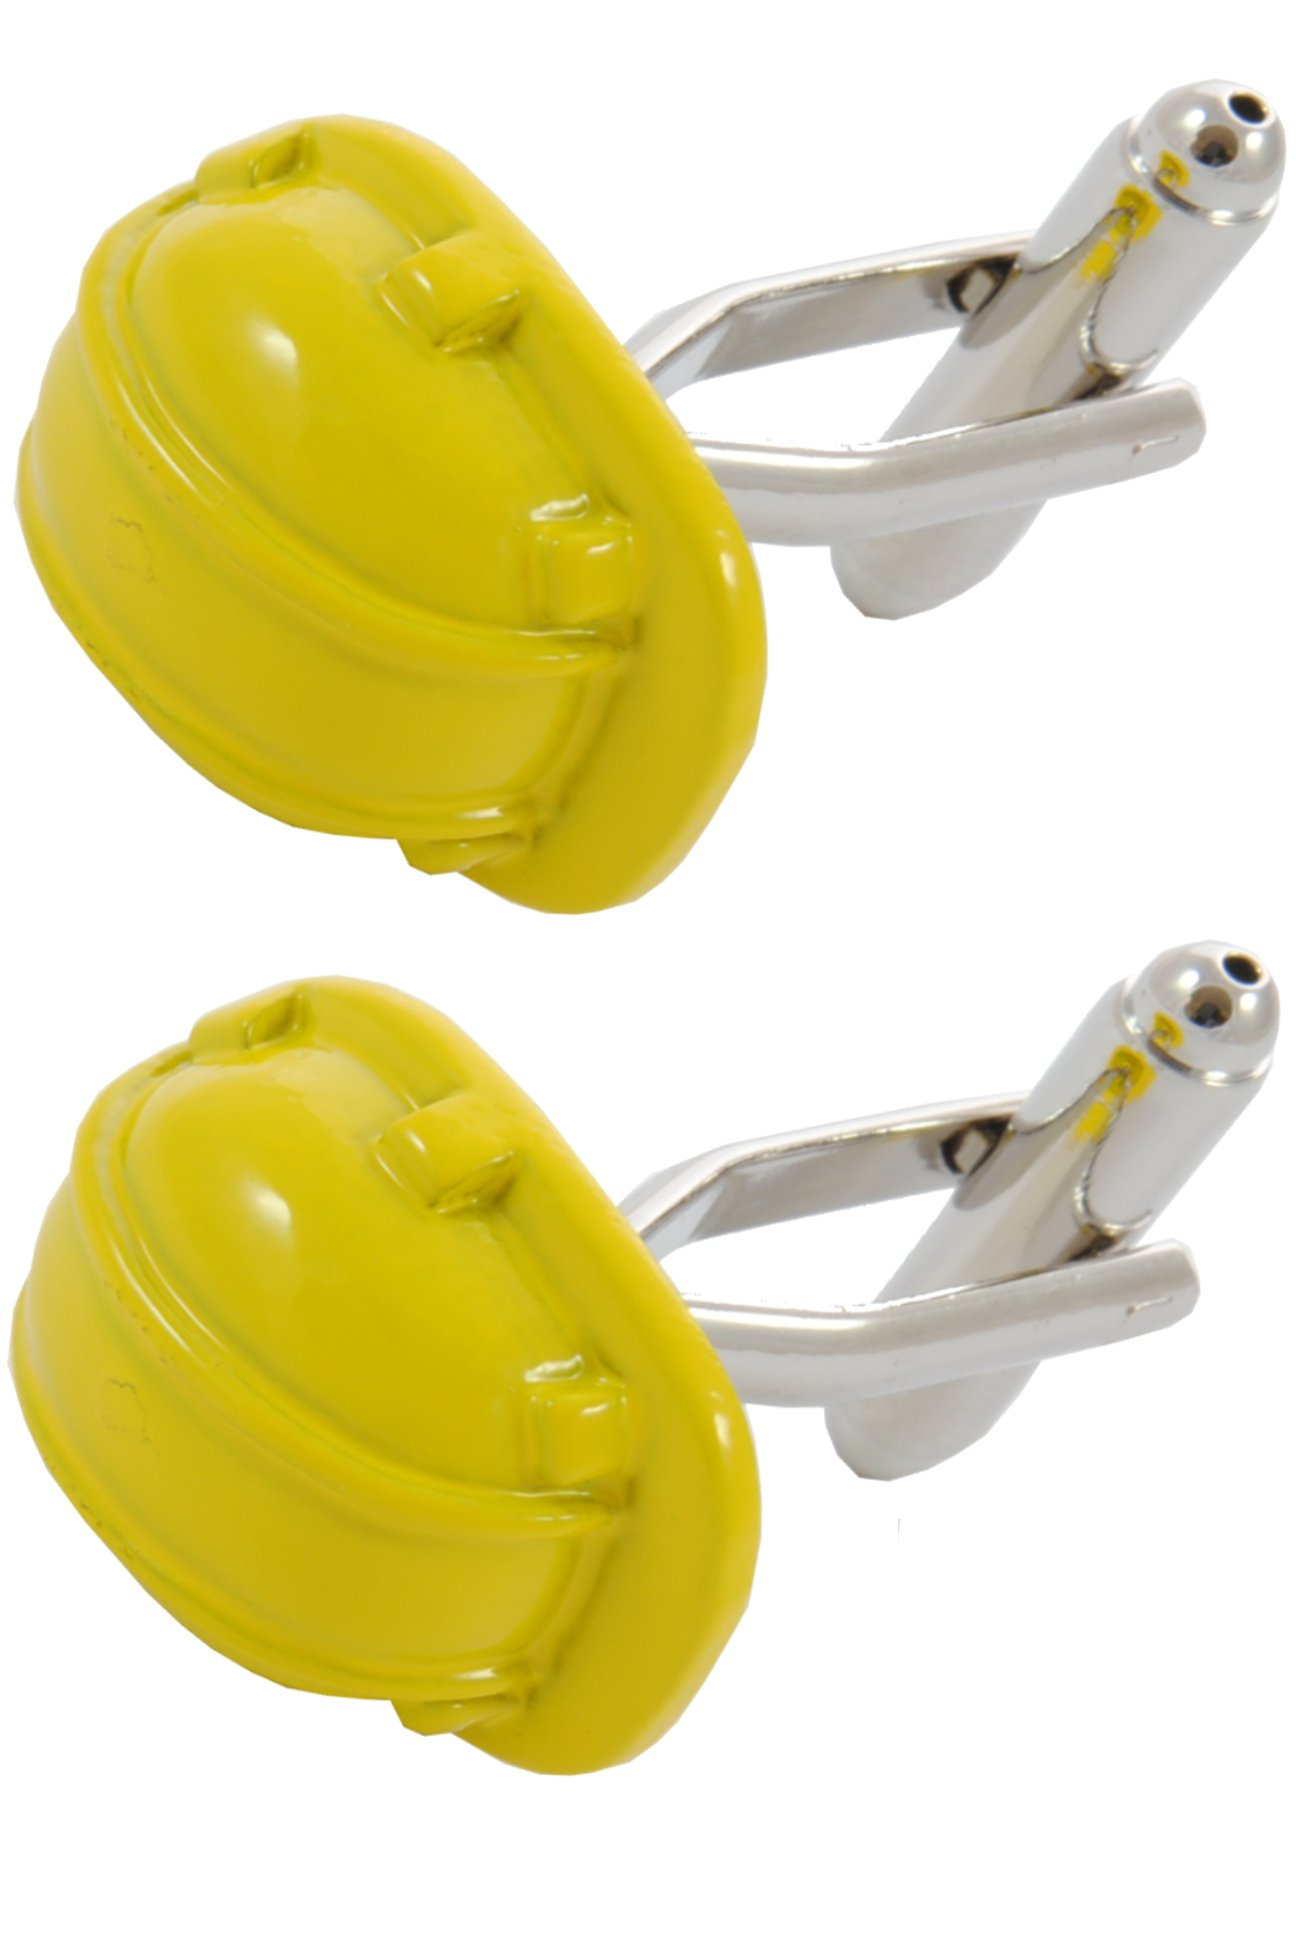 COLLAR AND CUFFS LONDON - Premium Cufflinks with Gift Box - Hard Hat - DIY Builder Construction Engineer Supervisor - Yellow Colour